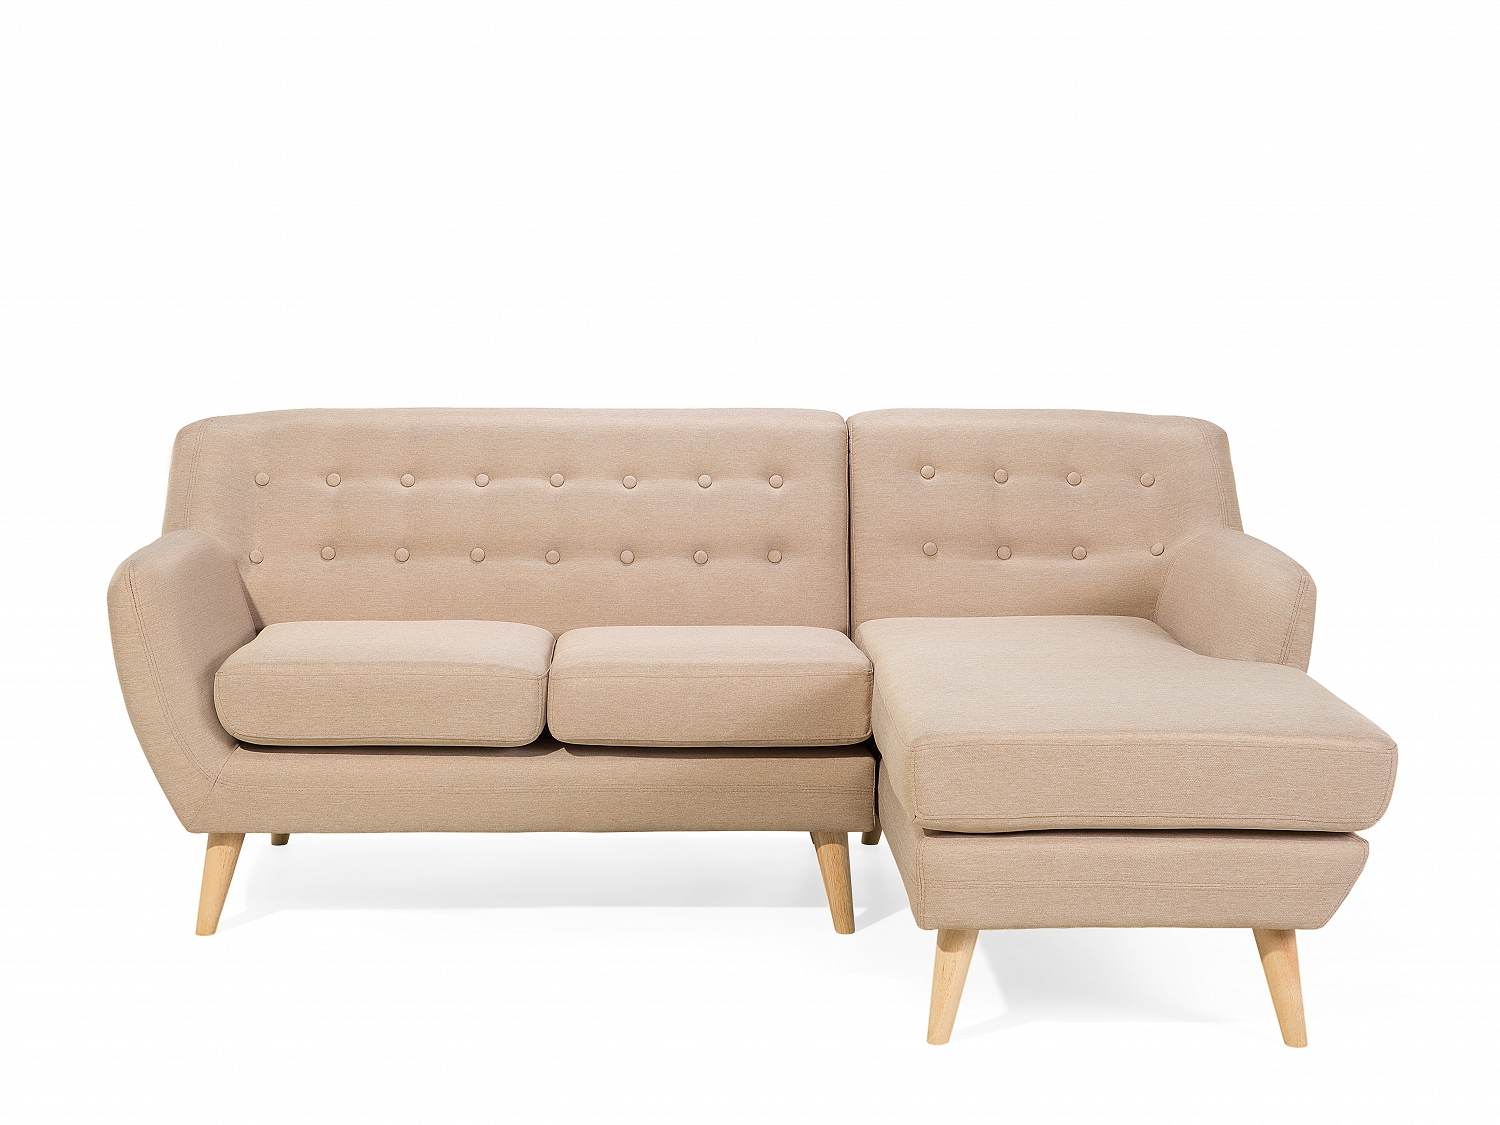 Corner sofa sectional couch fabric sofa retro beige ...